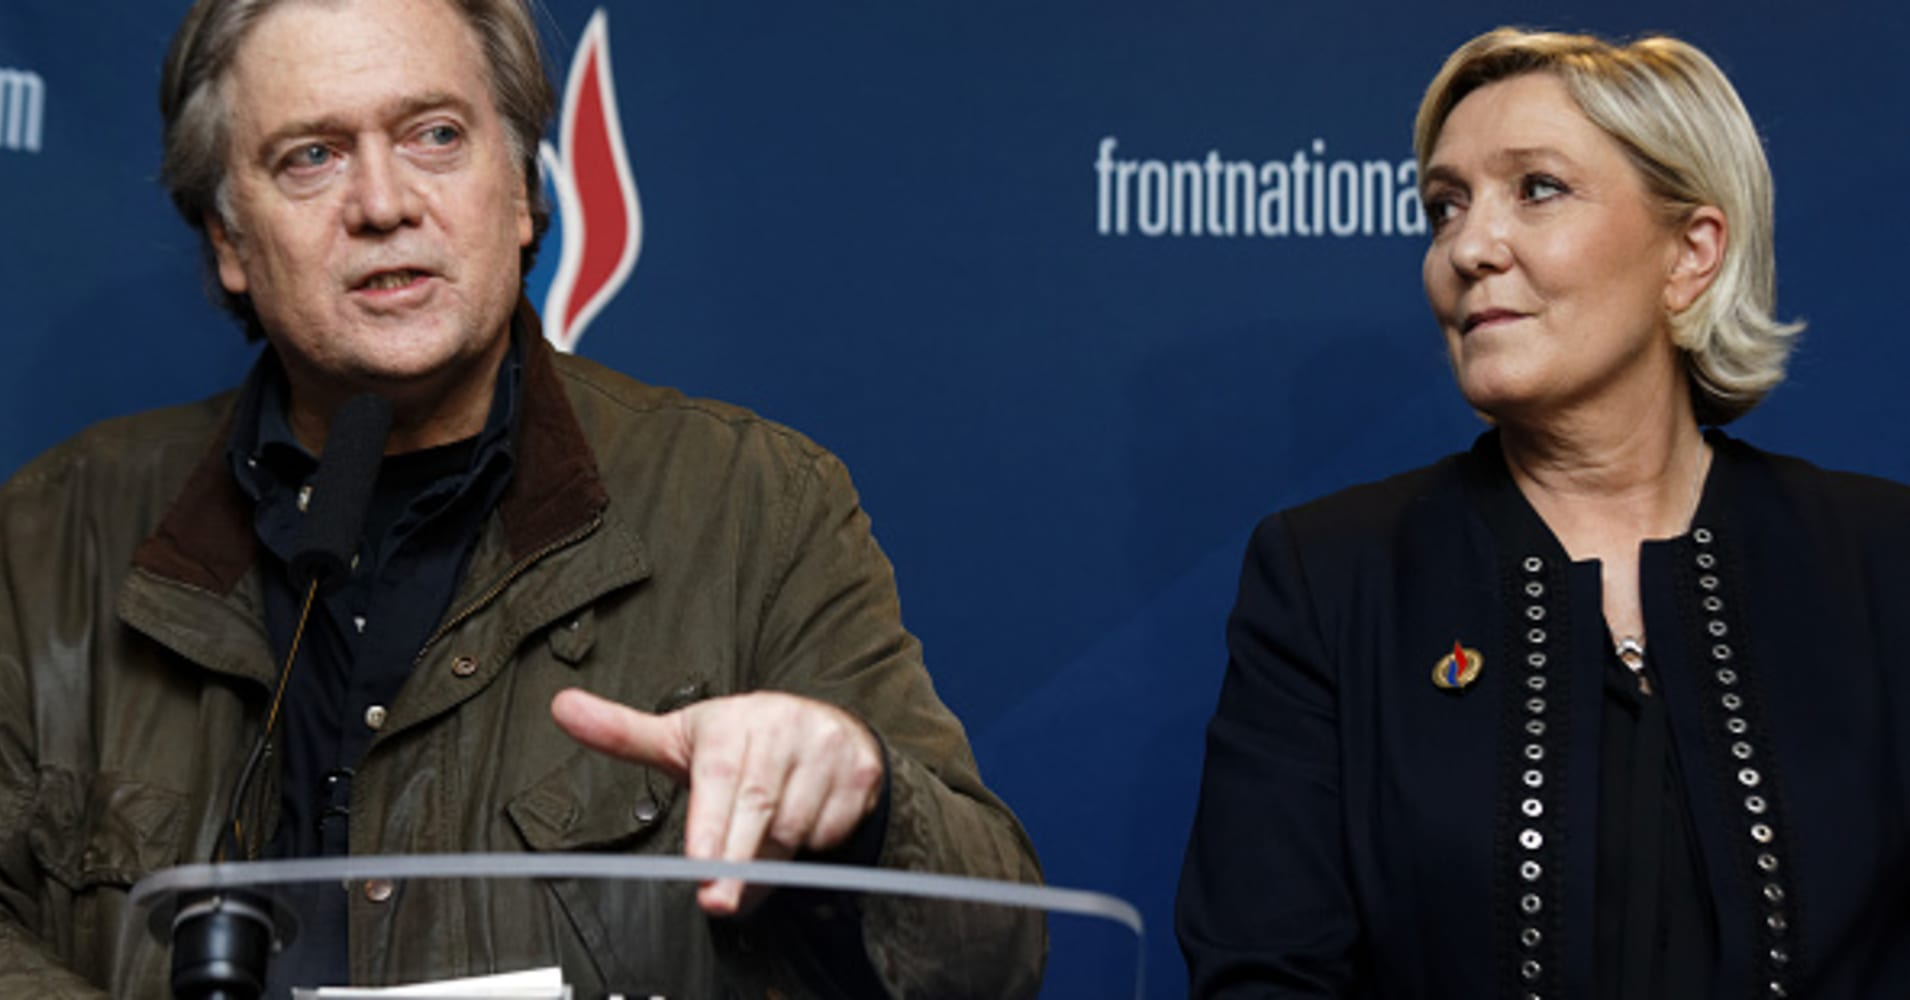 Bannon tells French far-right: 'Let them call you racist'